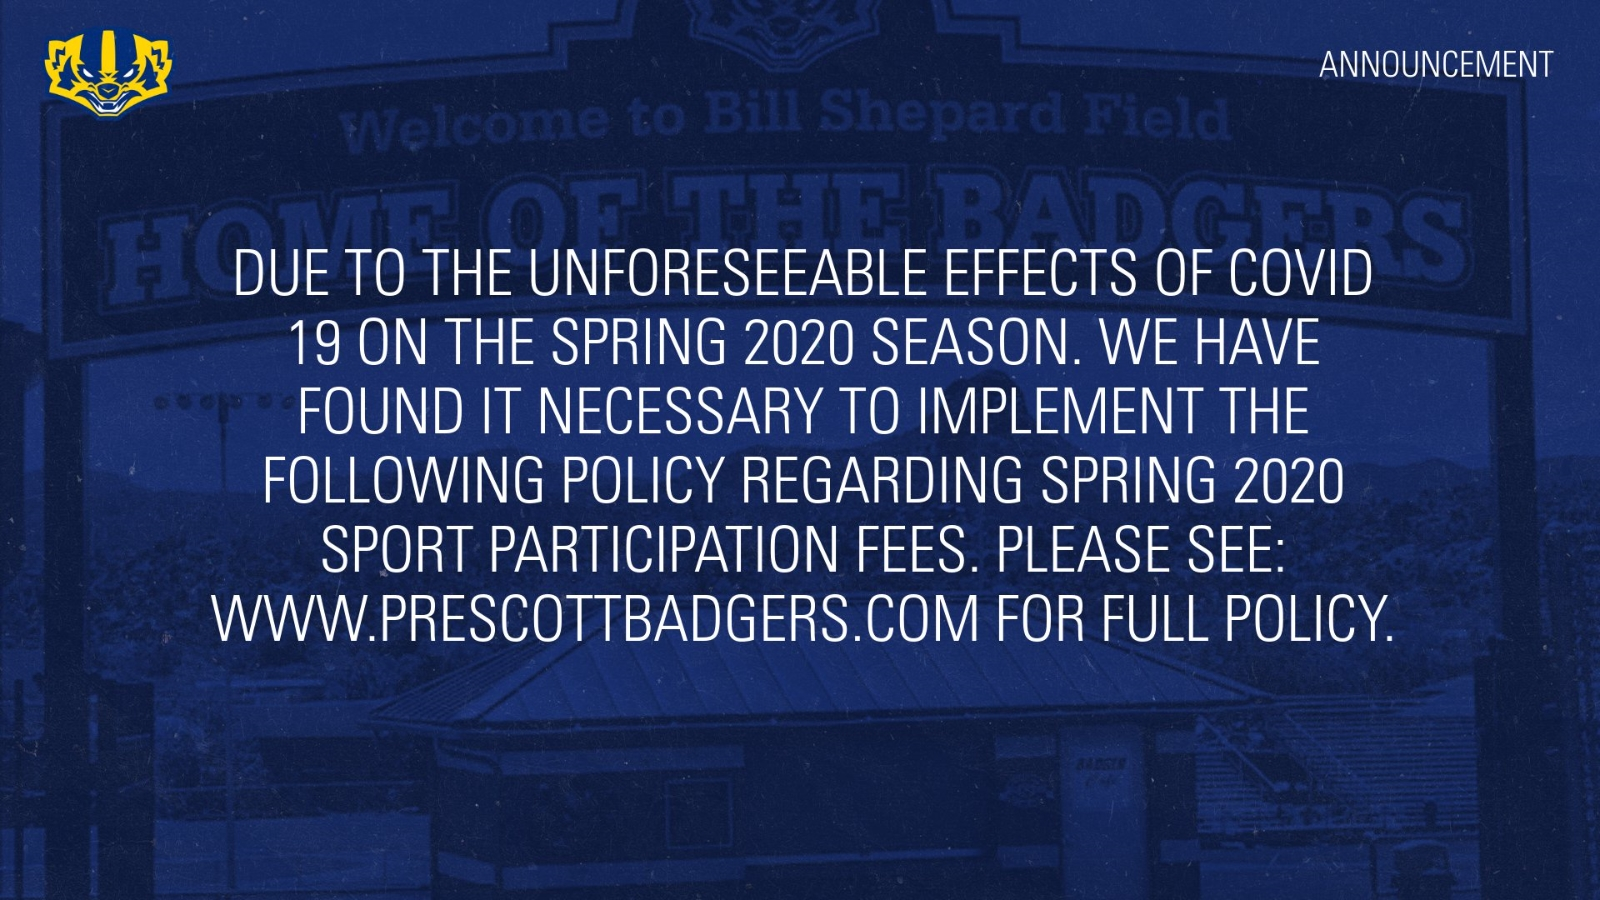 2020 Spring Sport Participation Fee Policy Change